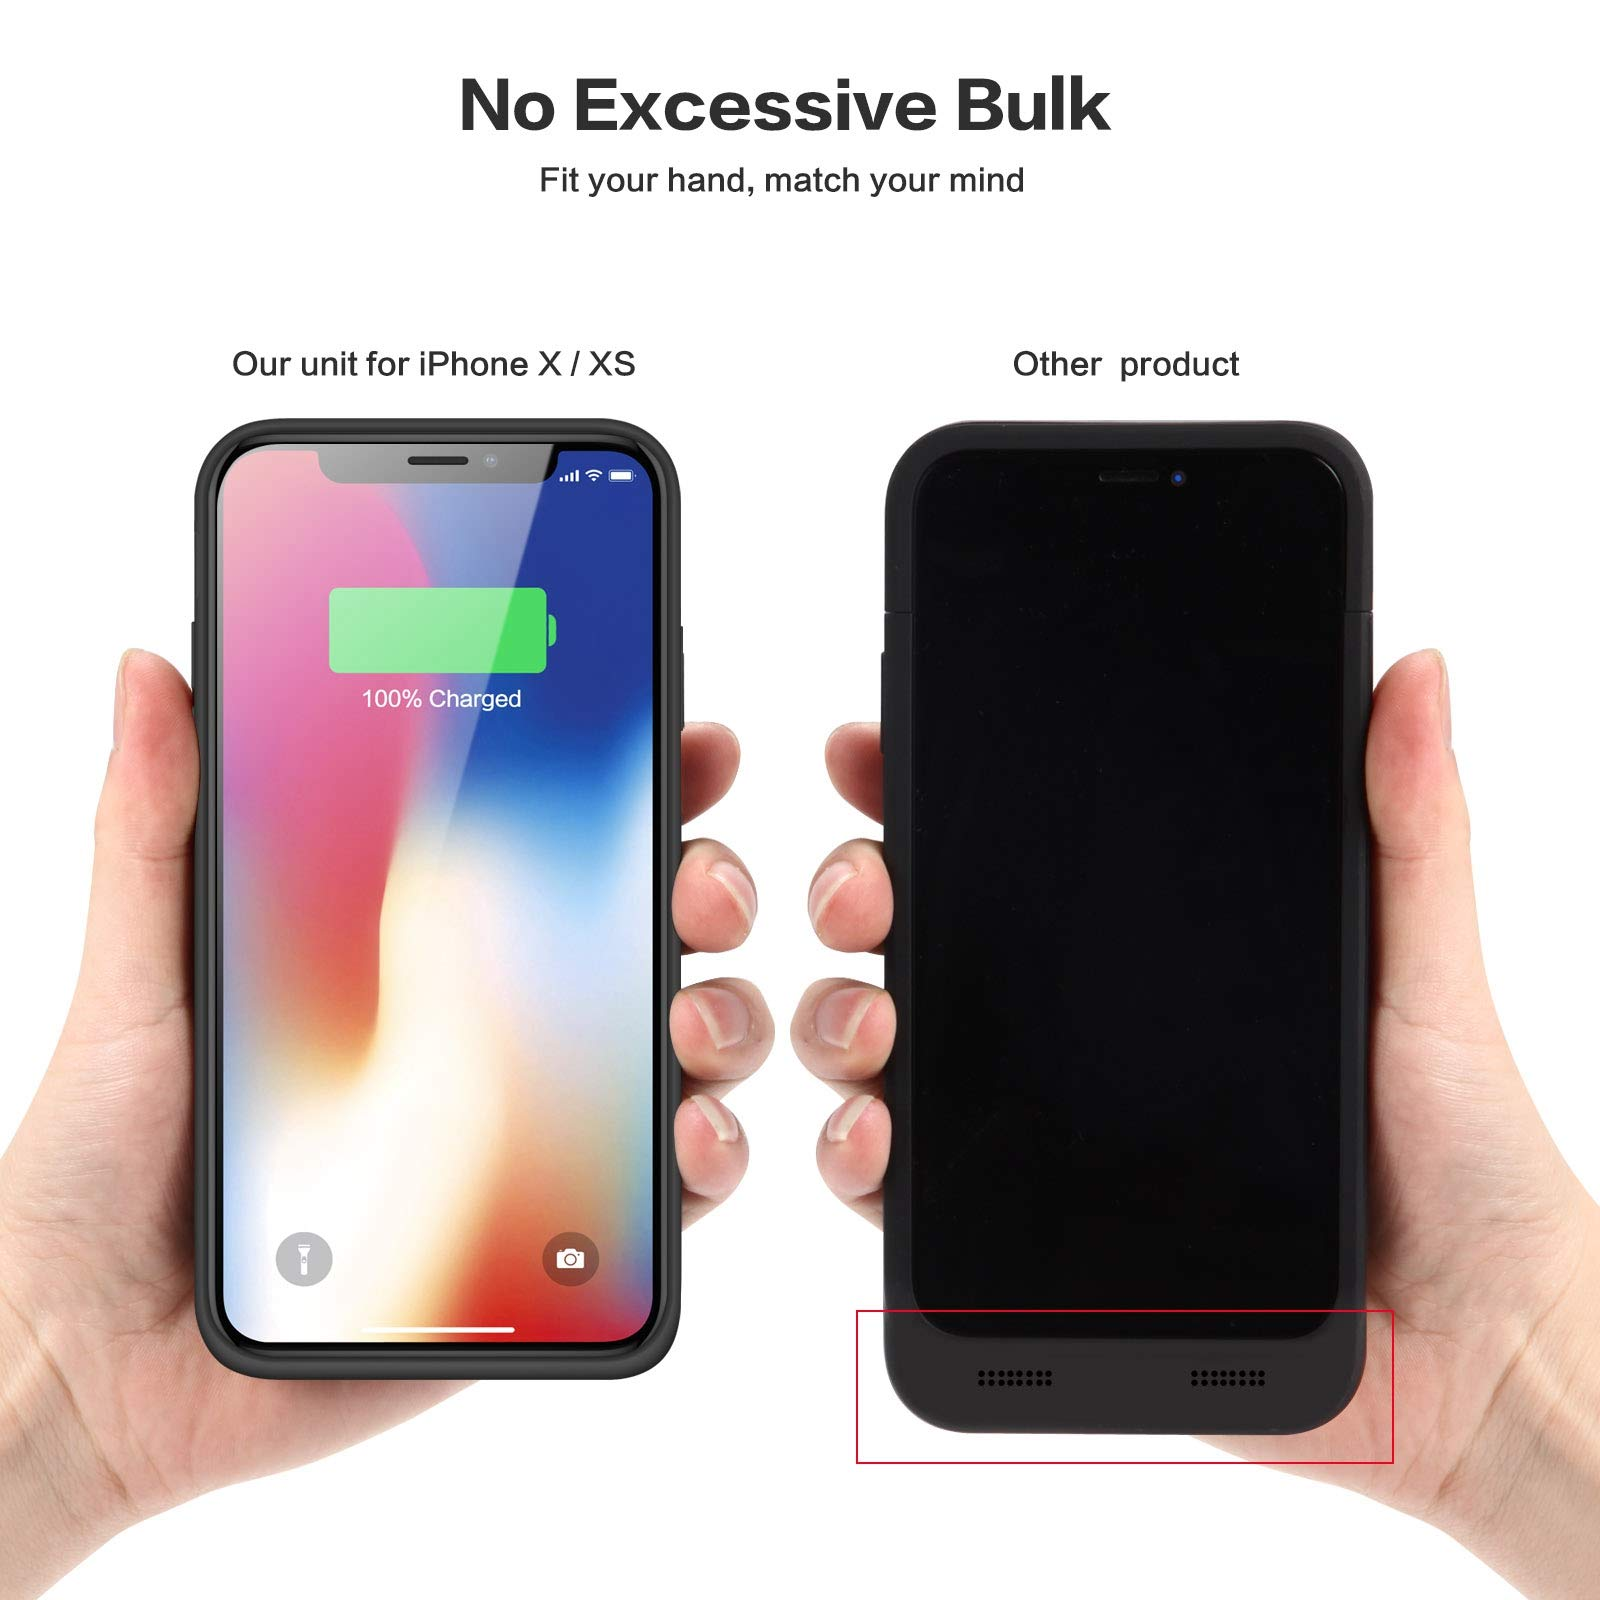 Battery Case for iPhone X/Xs, [6500mAh] Xooparc Protective Portable Charging Case Rechargeable Extended Battery Pack for Apple iPhone Xs&X (5.8') Backup Power Bank Cover - Black by Xooparc (Image #3)